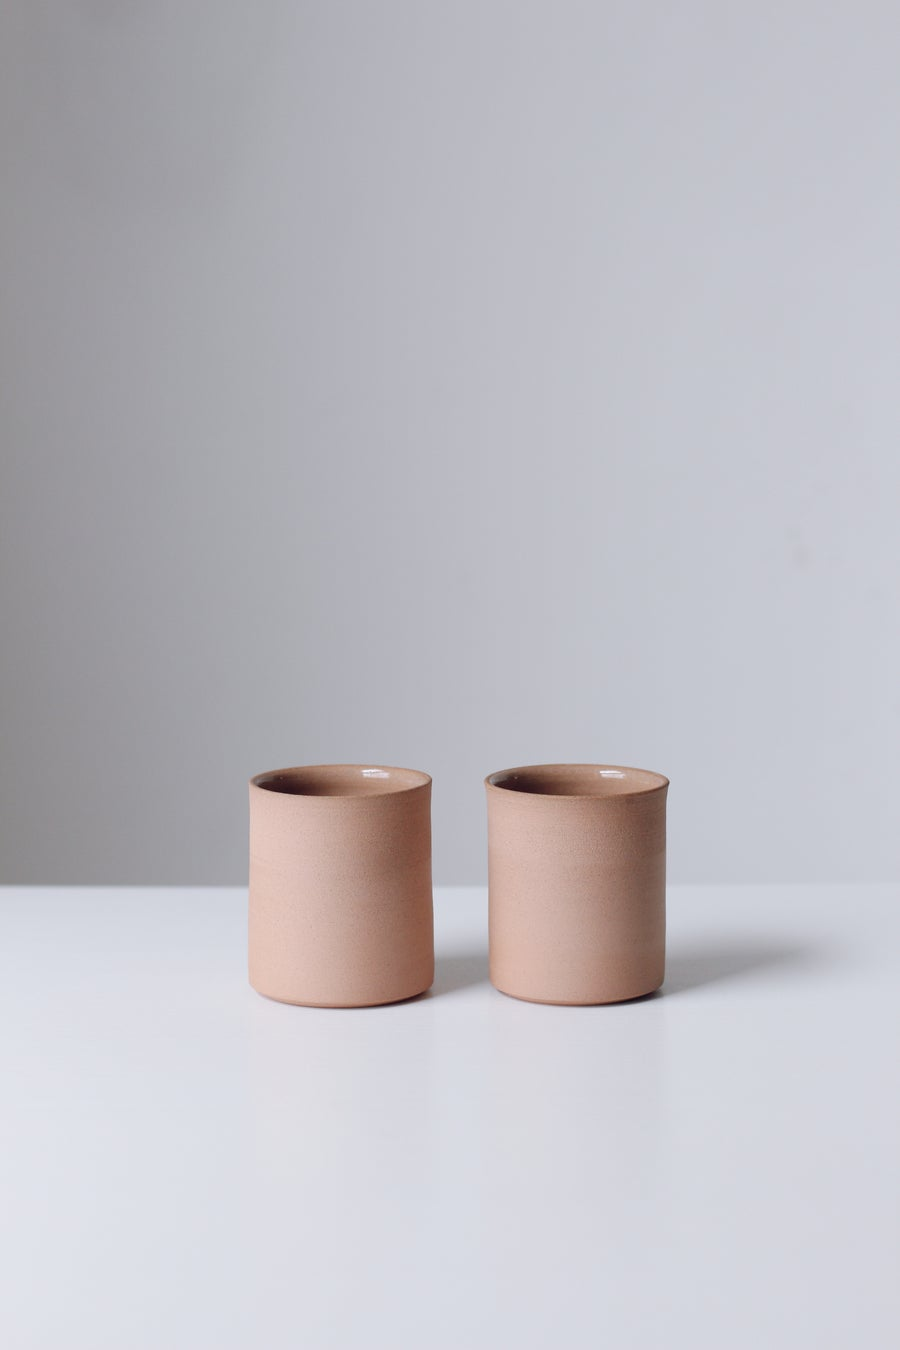 Image of Pair of Dune Tumblers